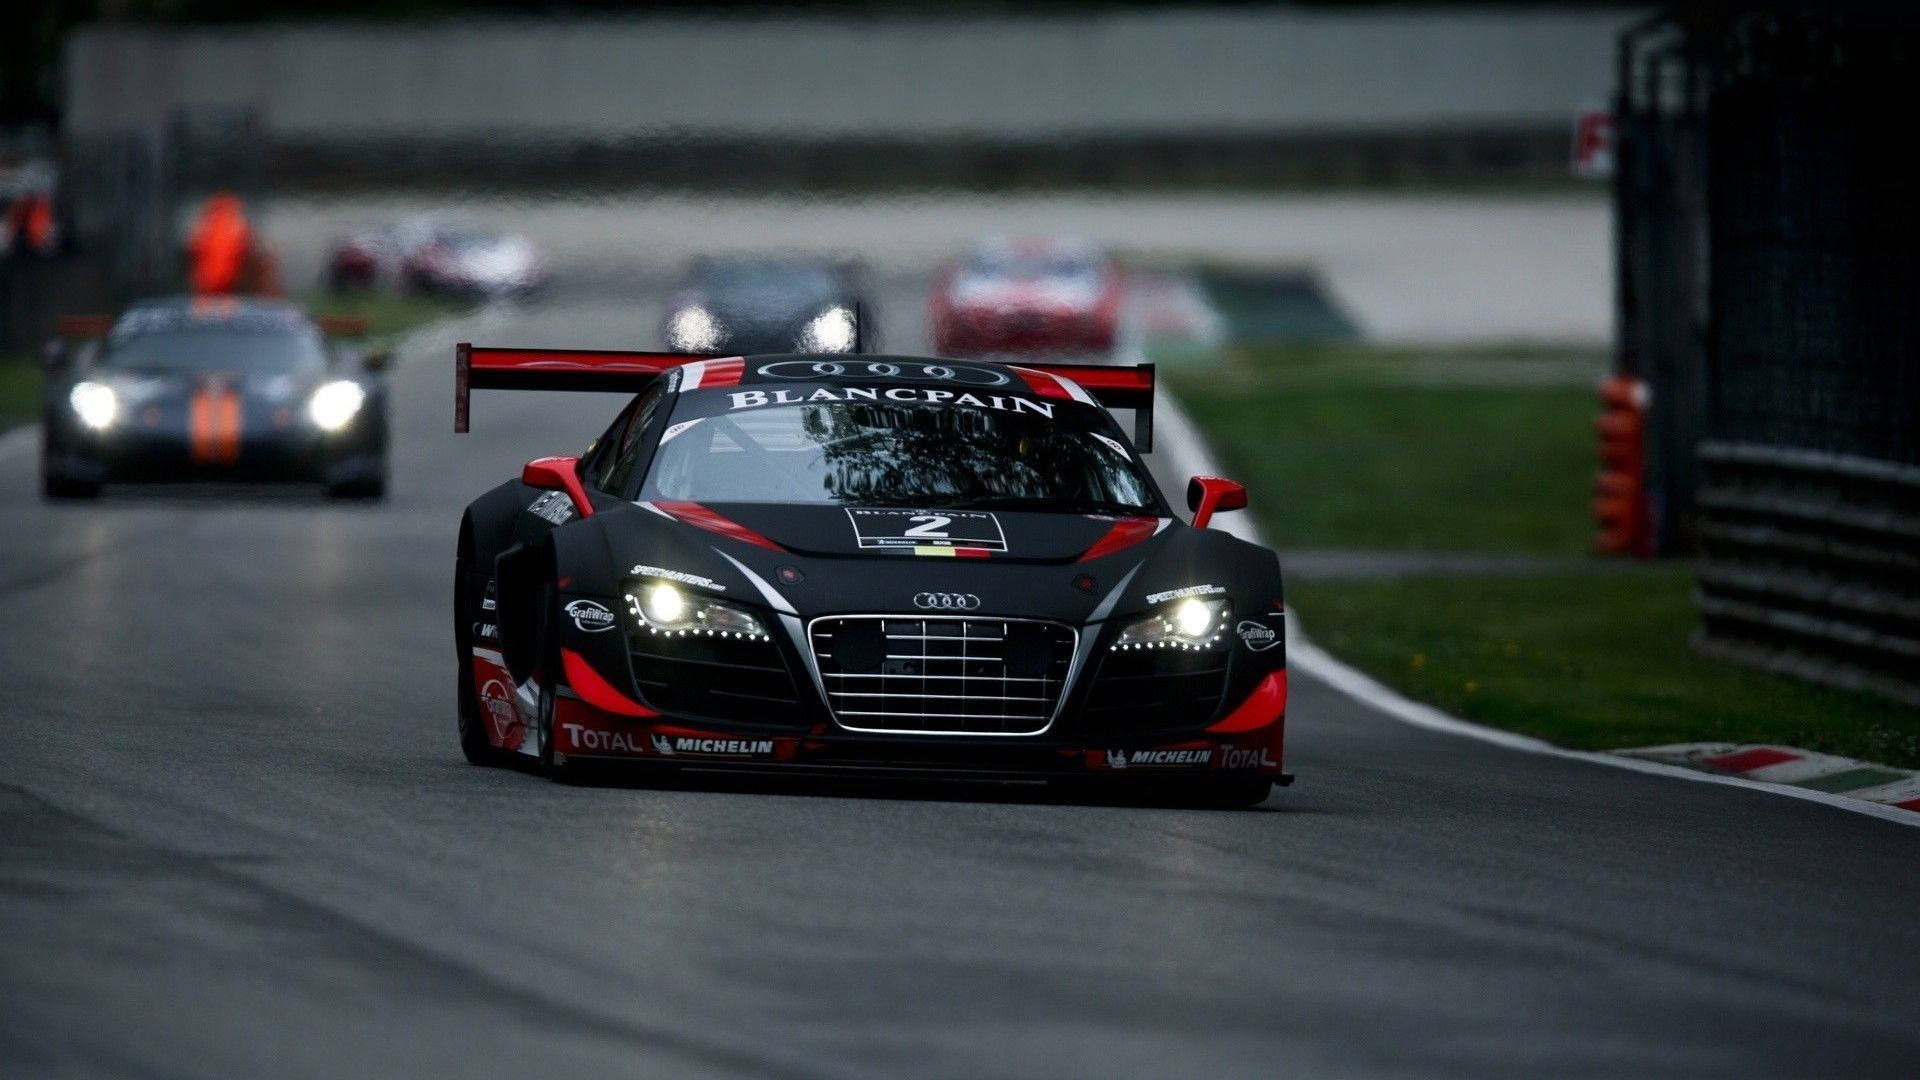 Audi R8 Gt Tdi Le Mans Blancpain Cars Wallpaper | Robs Collections ...